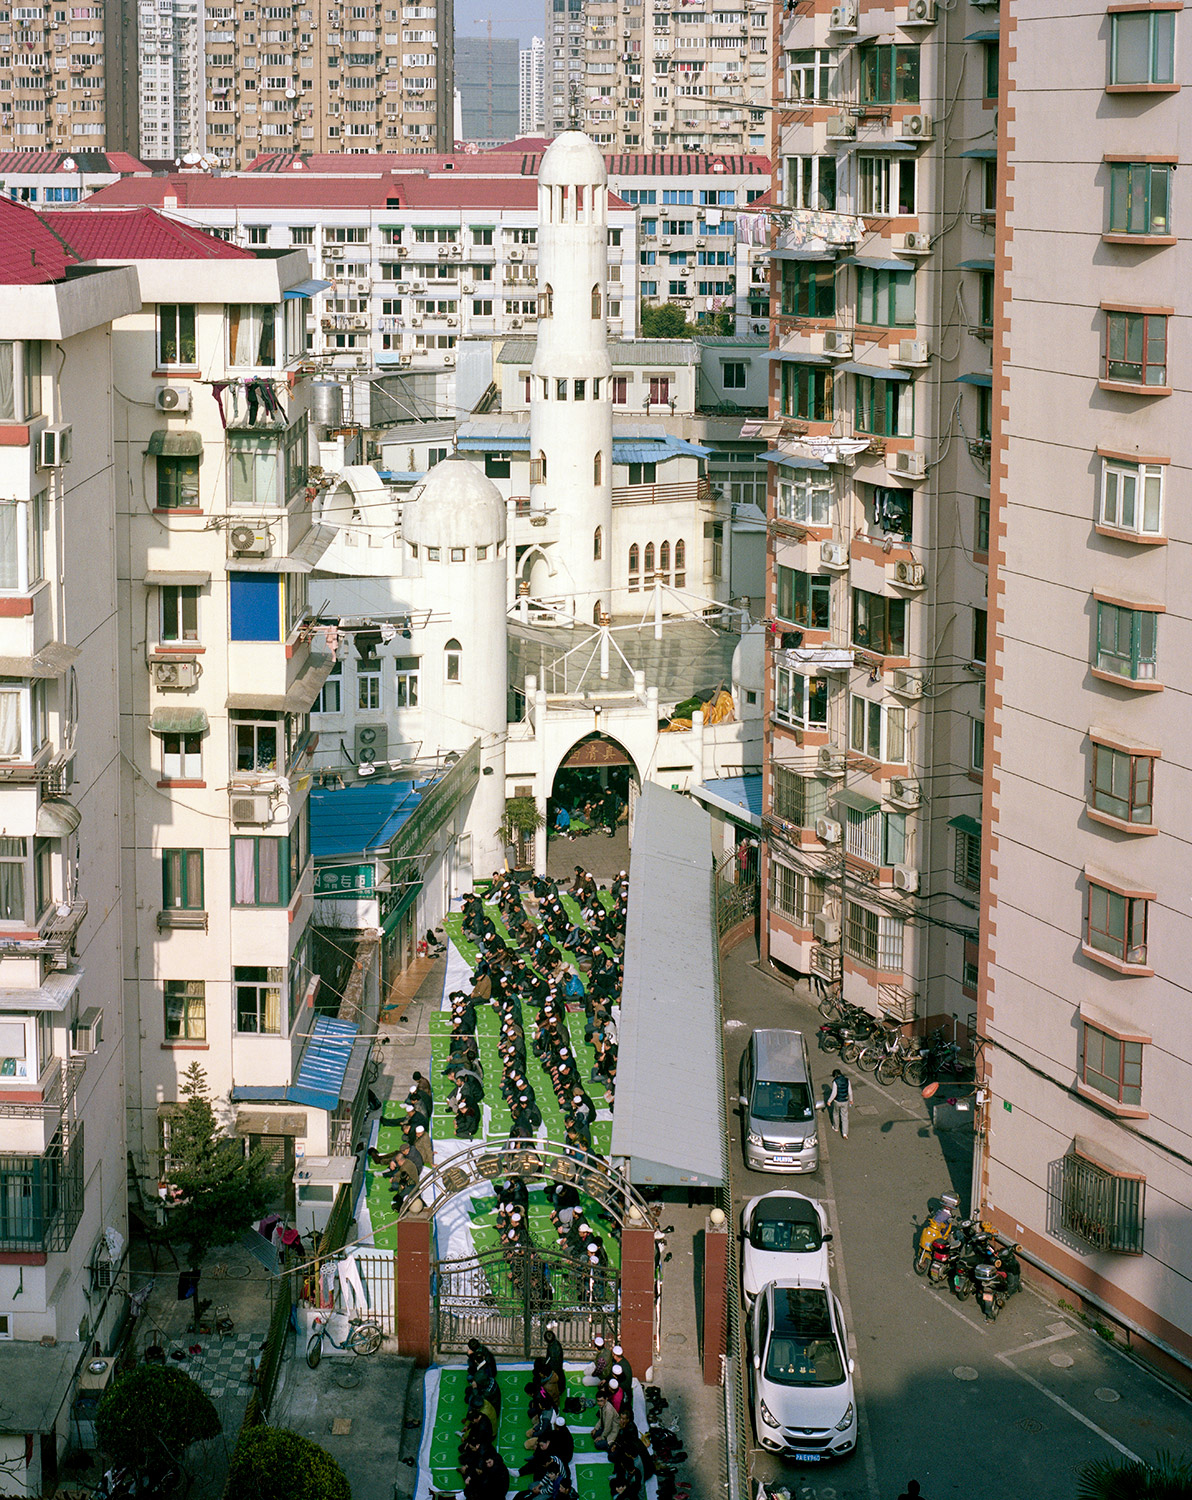 mosque_shanghai_prayer_muslim_yghur.jpg